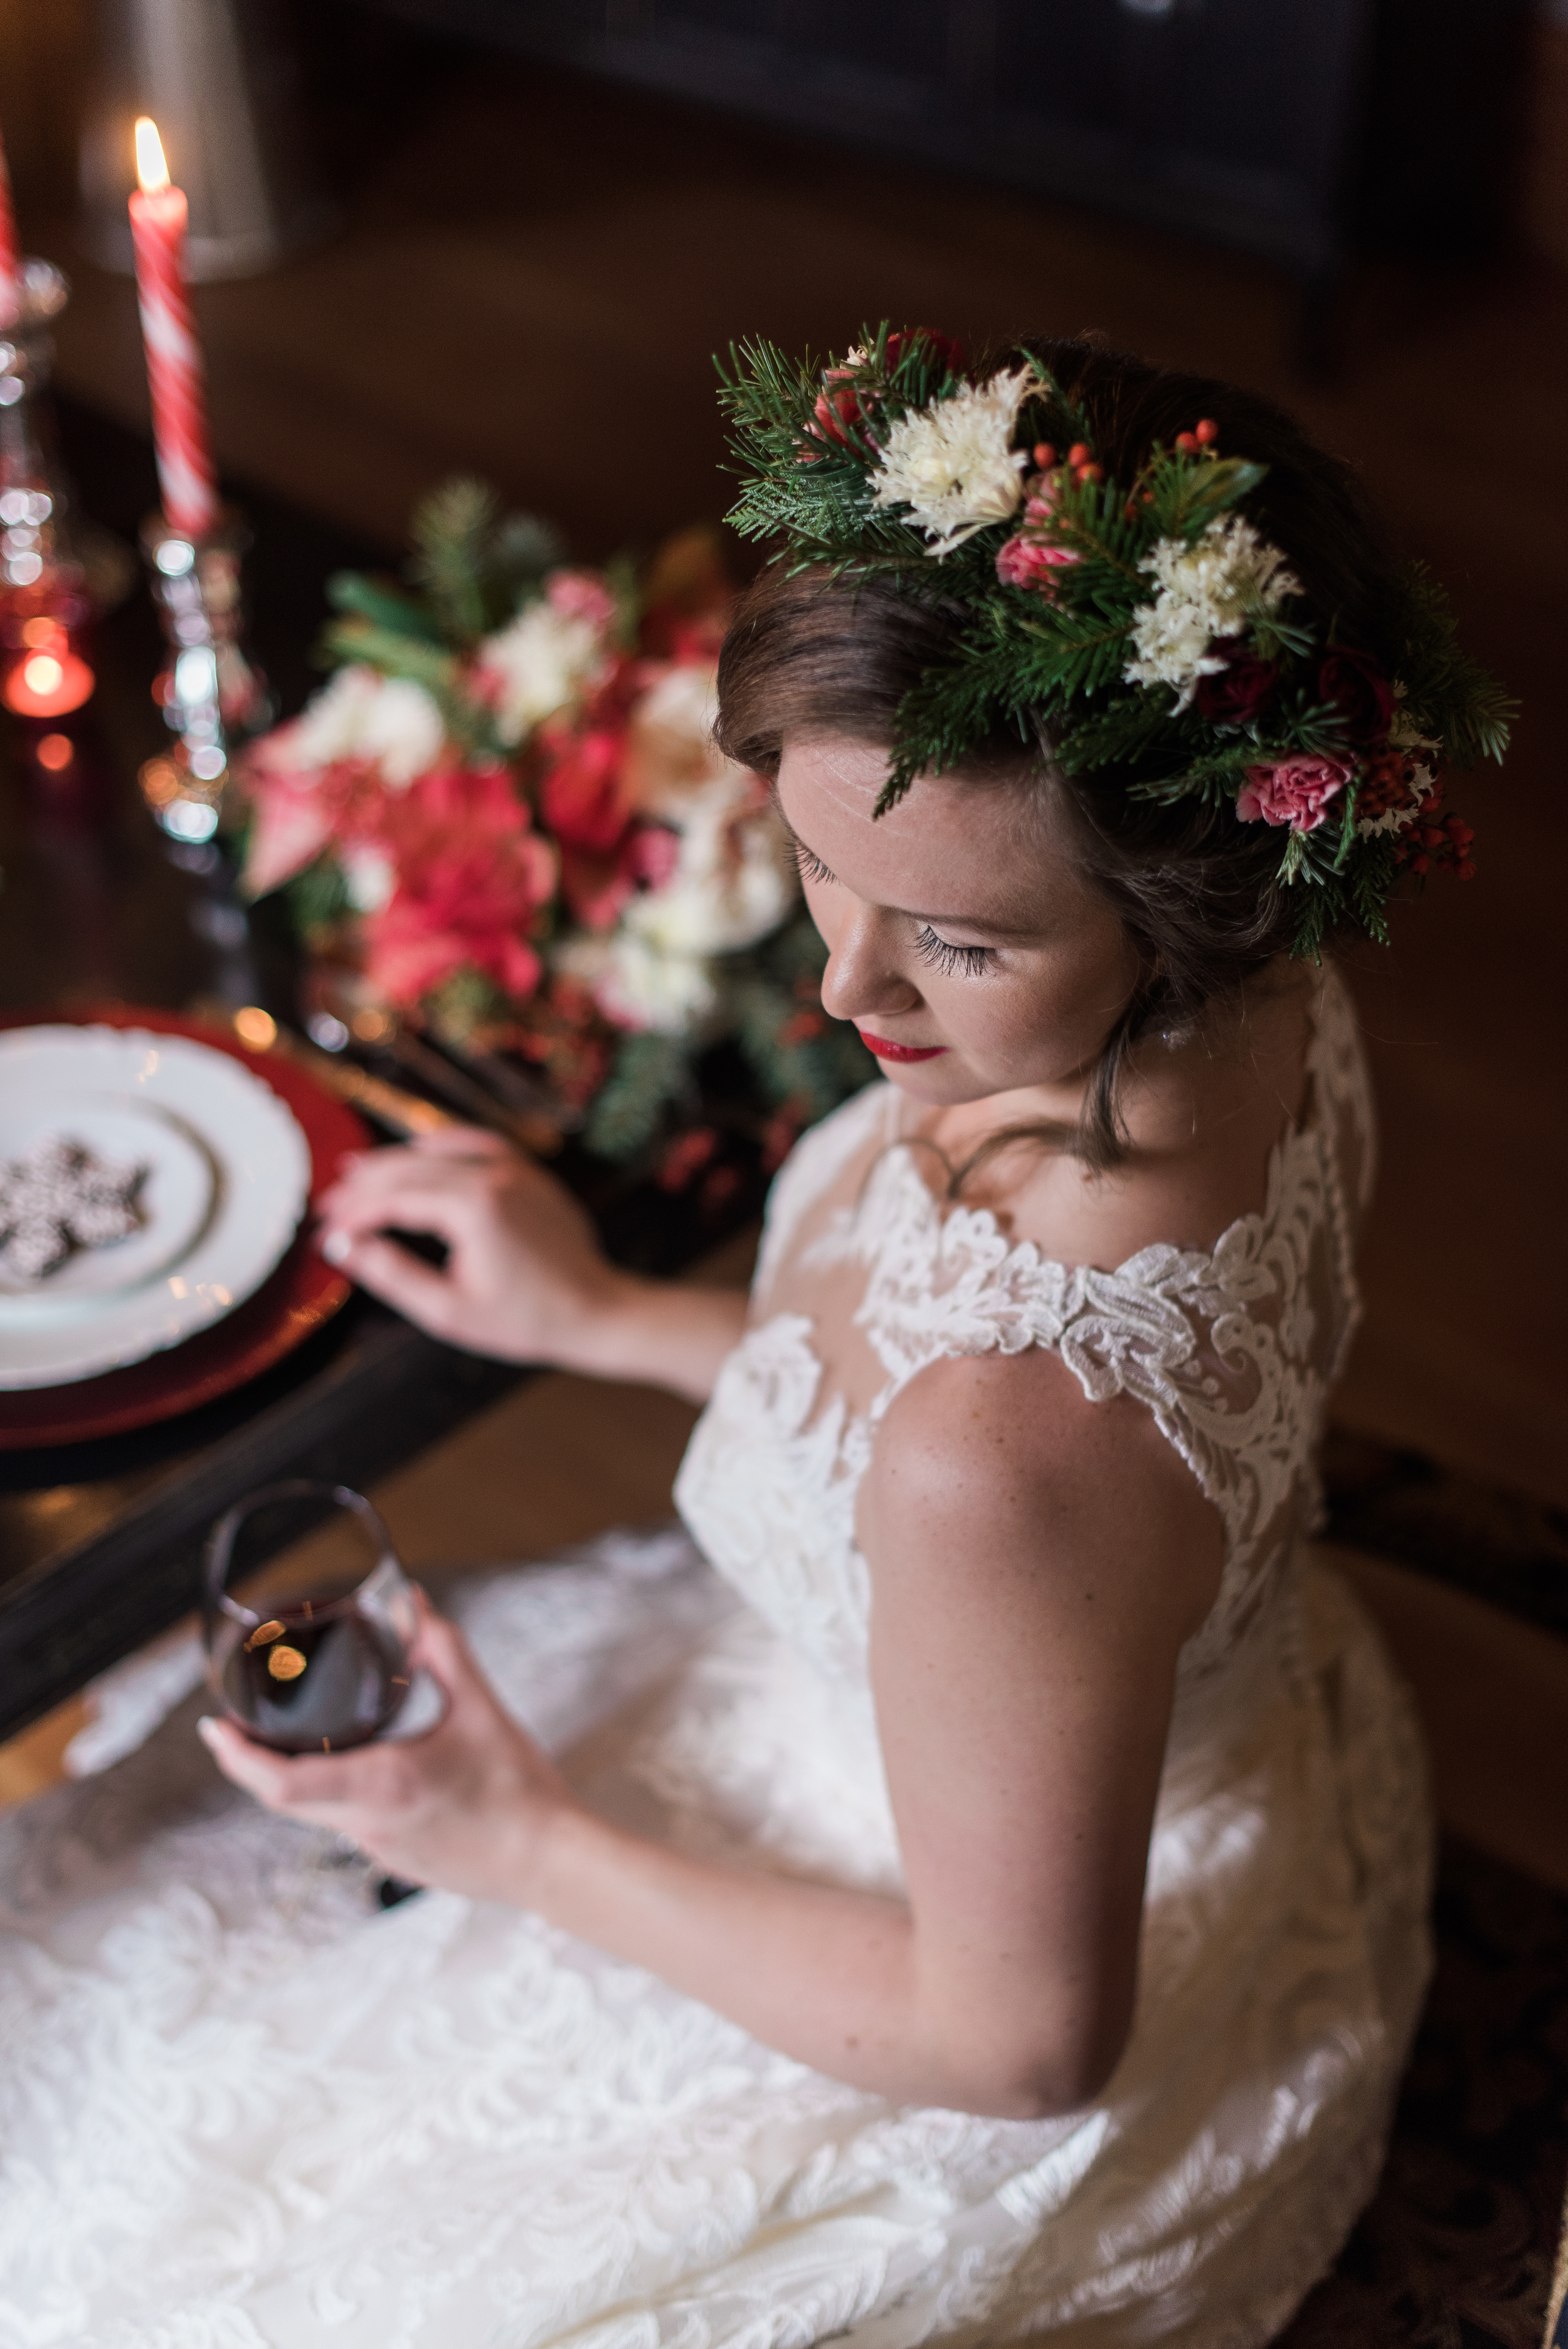 Intimate Christmas Wedding at home. Christmas cookies from Ciao